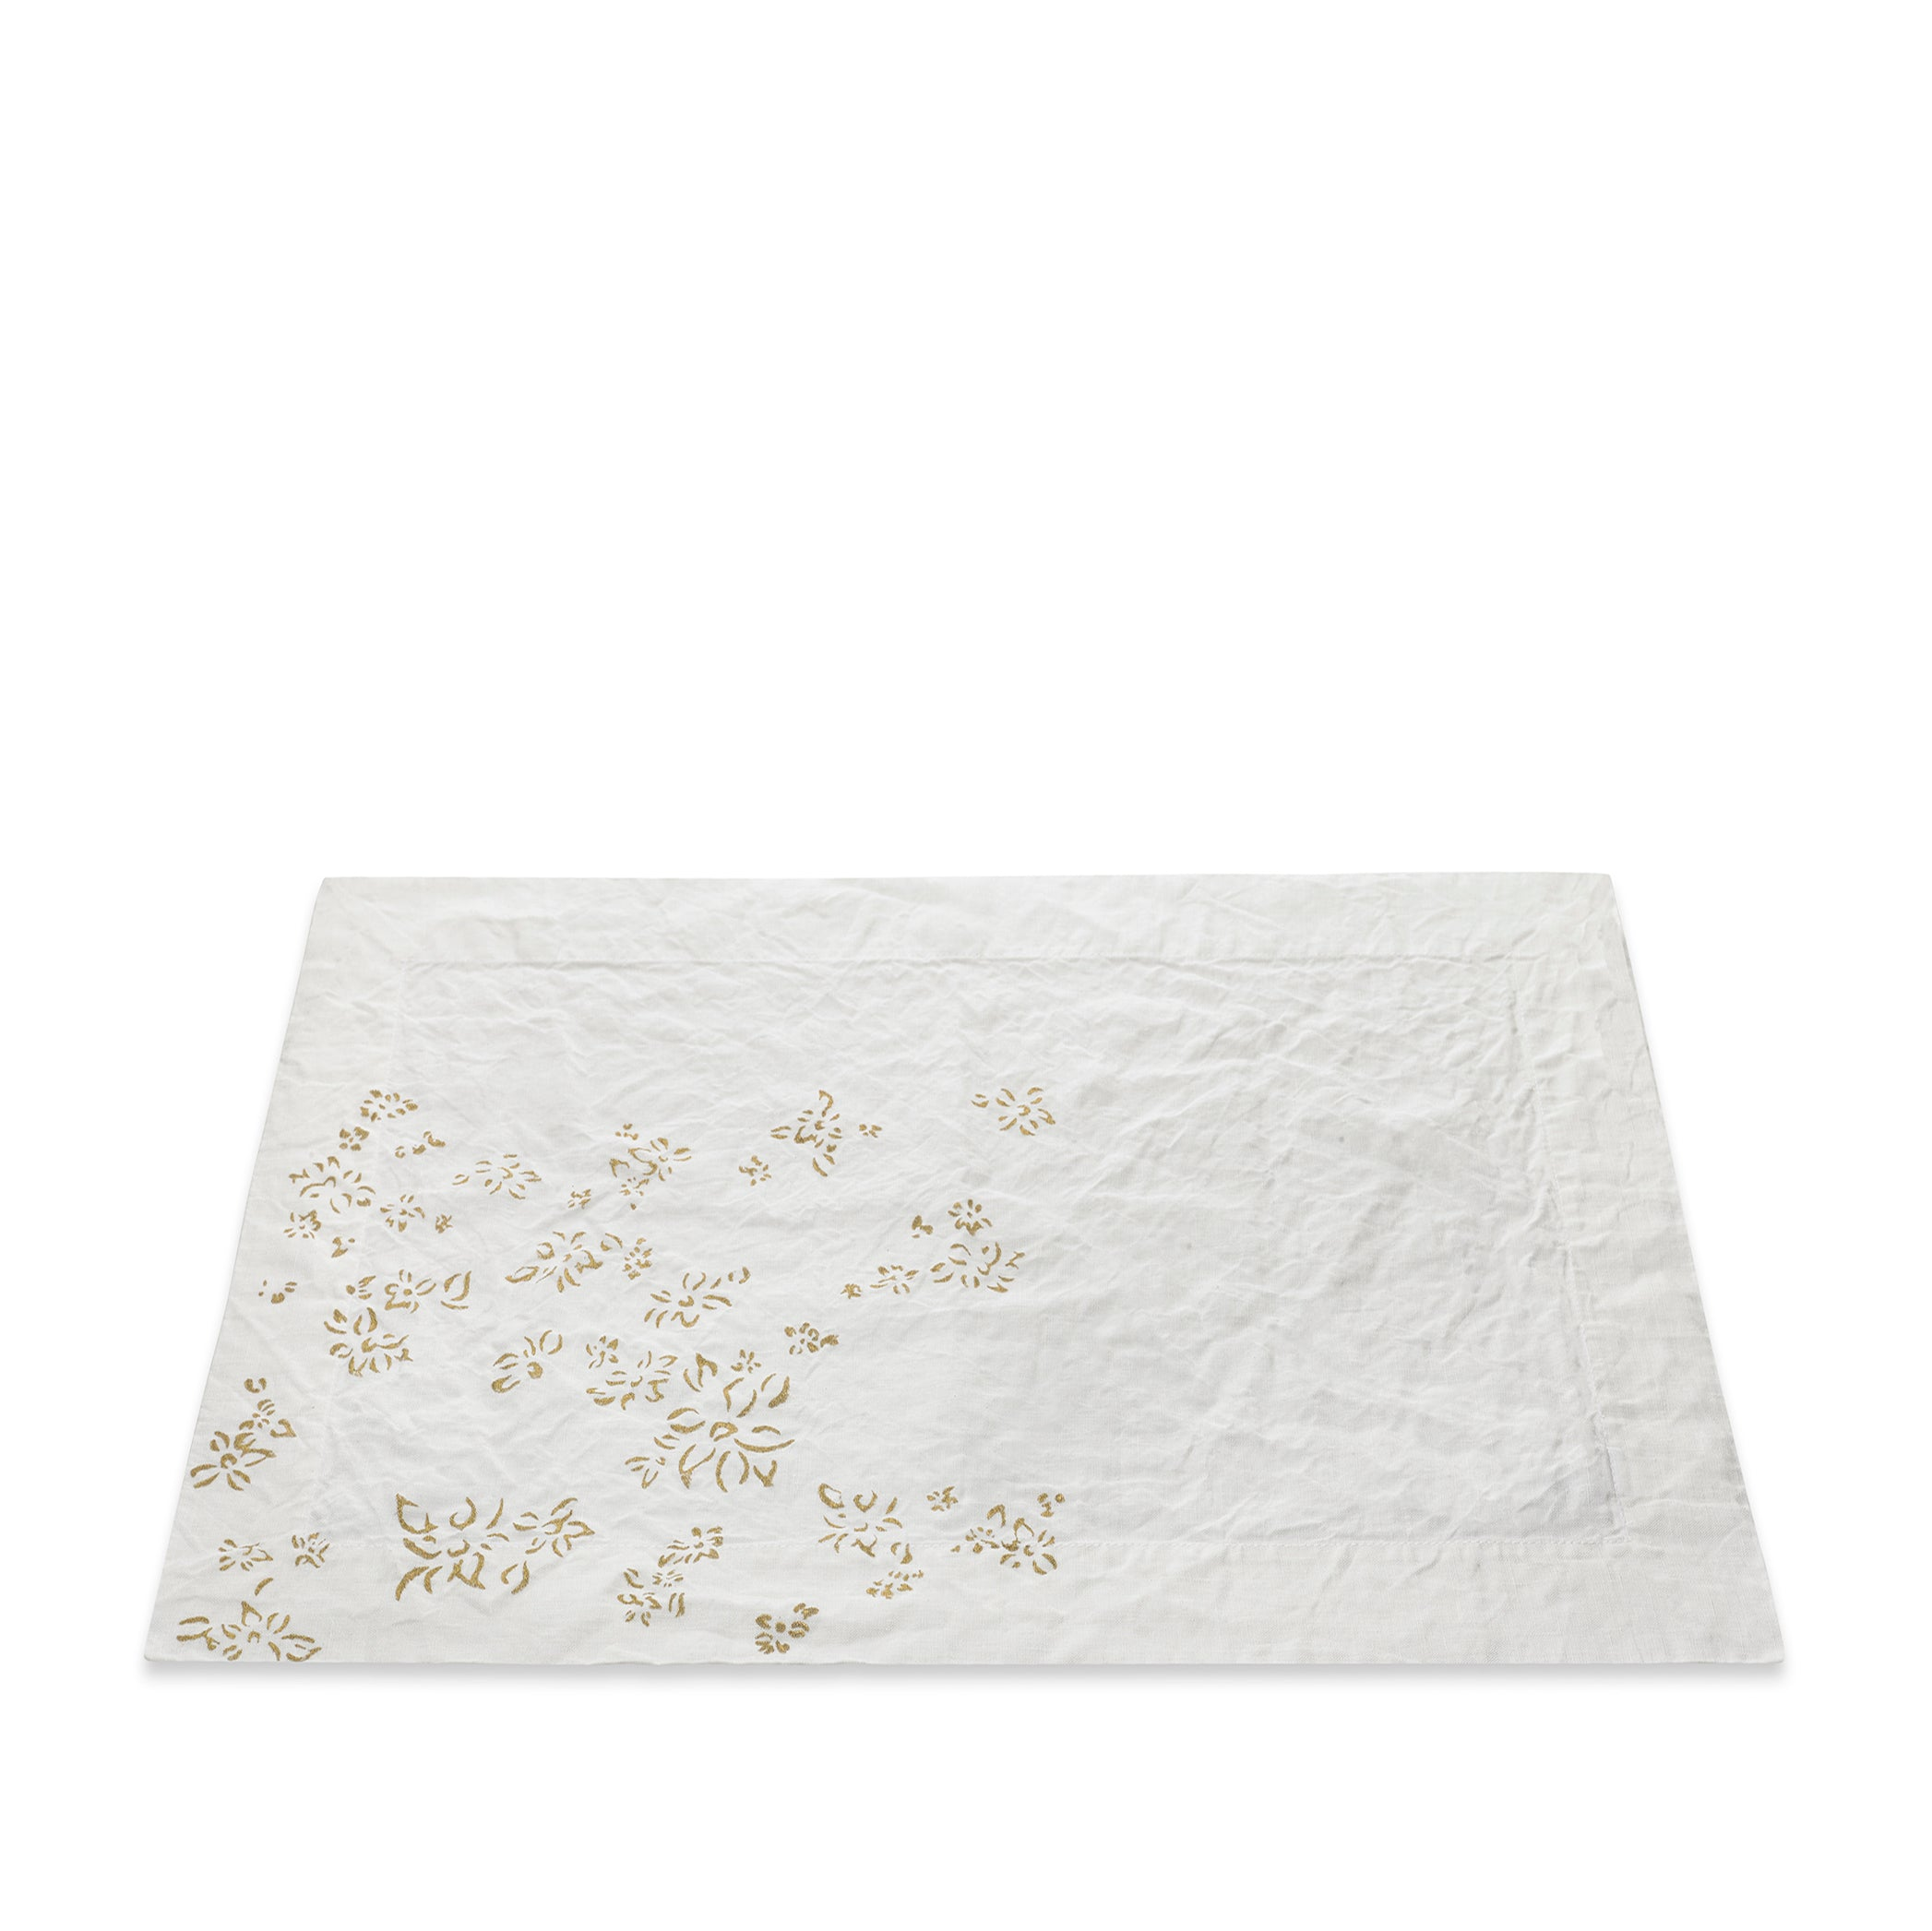 Bernadette's Falling Flower Linen Placemat in Gold